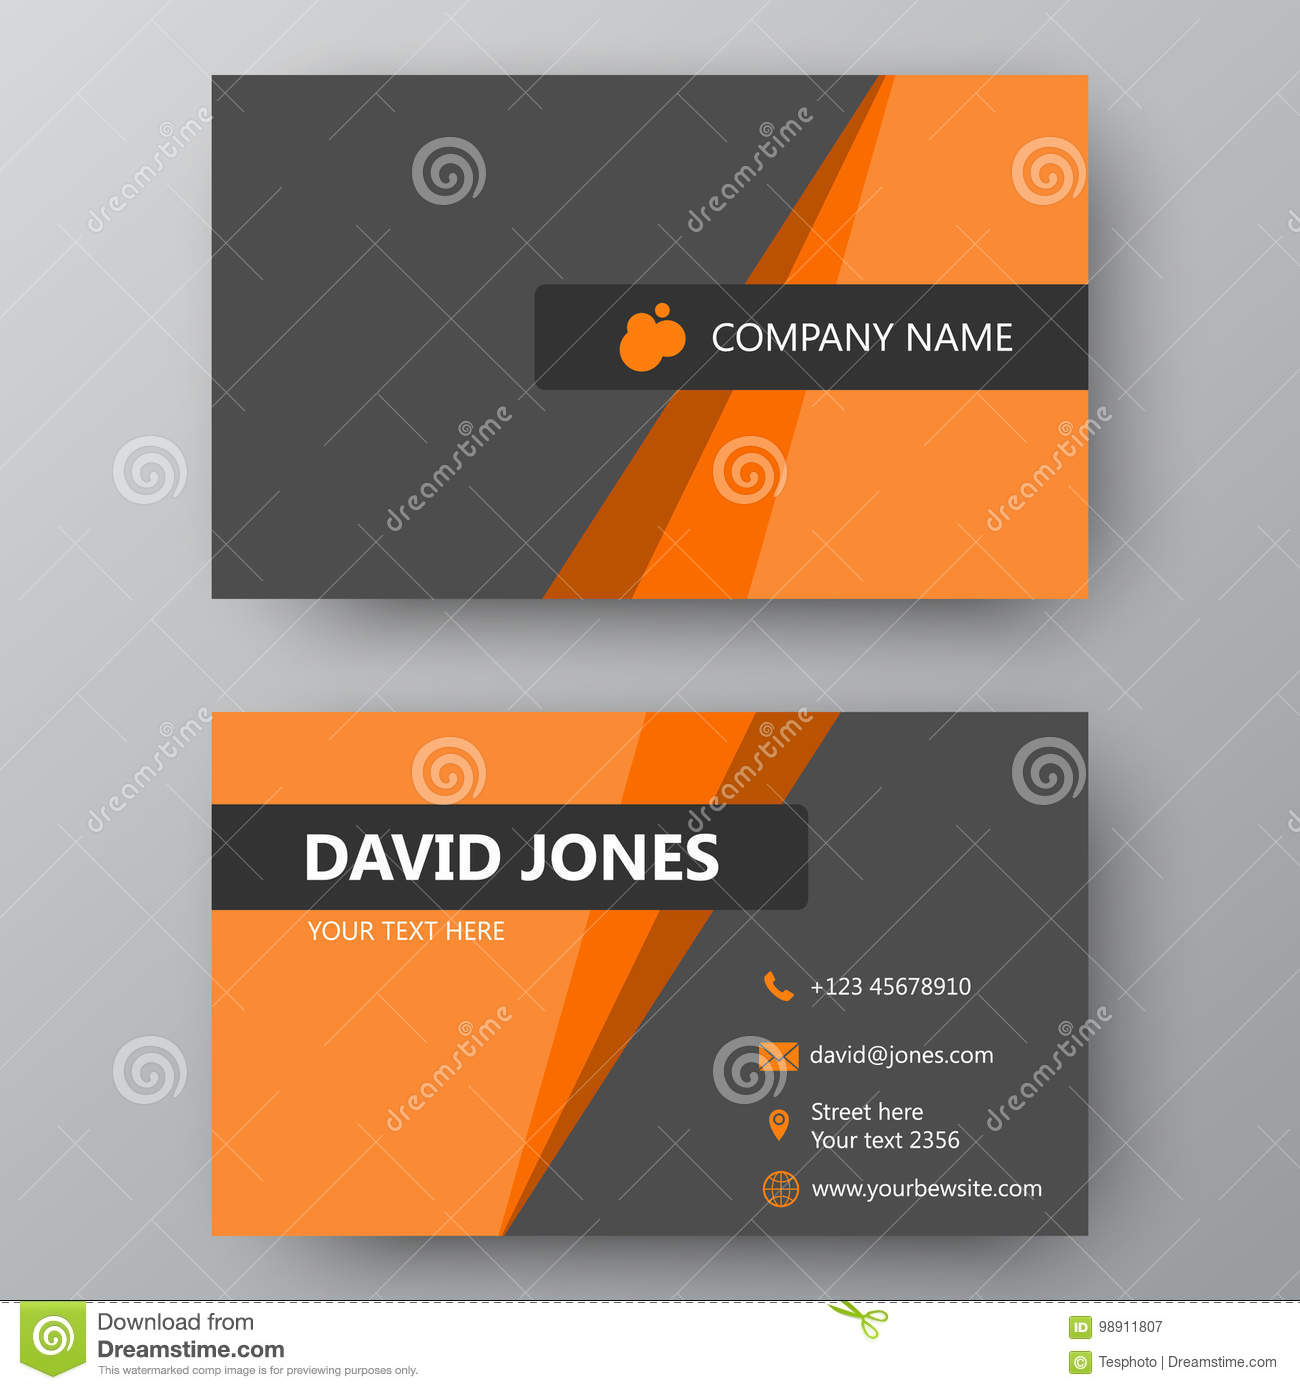 Modern presentation card with company logo vector business card modern presentation card with company logo vector business card branding cards reheart Gallery